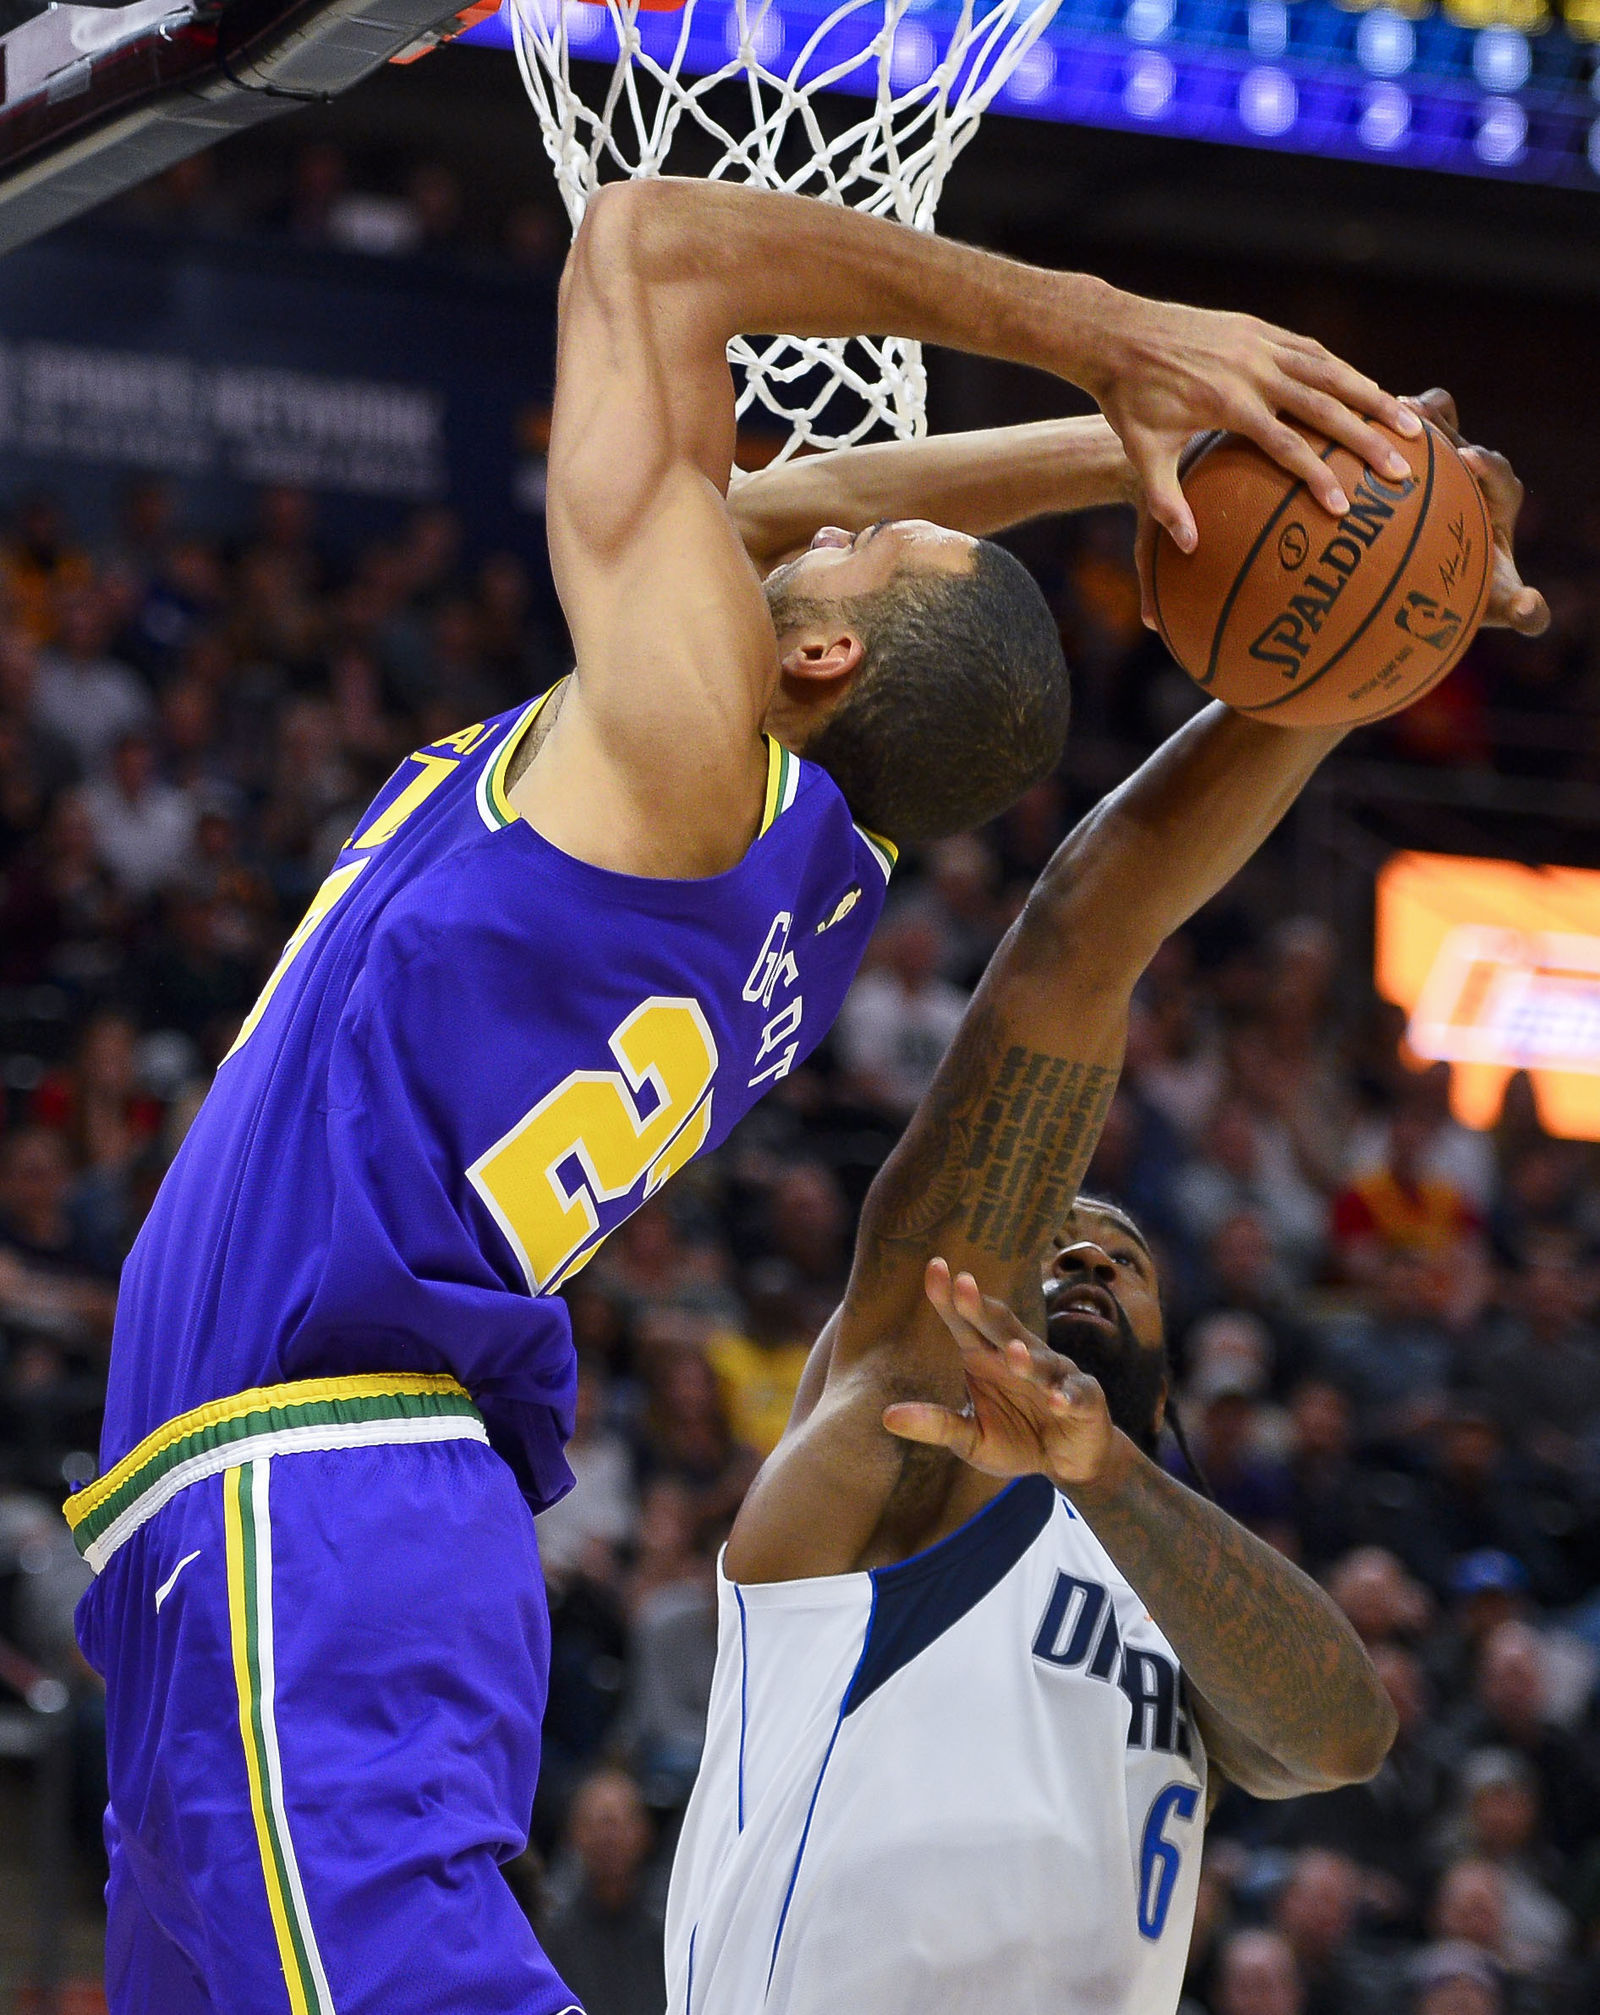 Utah Jazz center Rudy Gobert (27) tries to shoot as Dallas Mavericks center DeAndre Jordan (6) gets a hand on the ball during the first half of an NBA basketball game Wednesday, Nov. 7, 2018, in Salt Lake City. (AP Photo/Alex Goodlett)